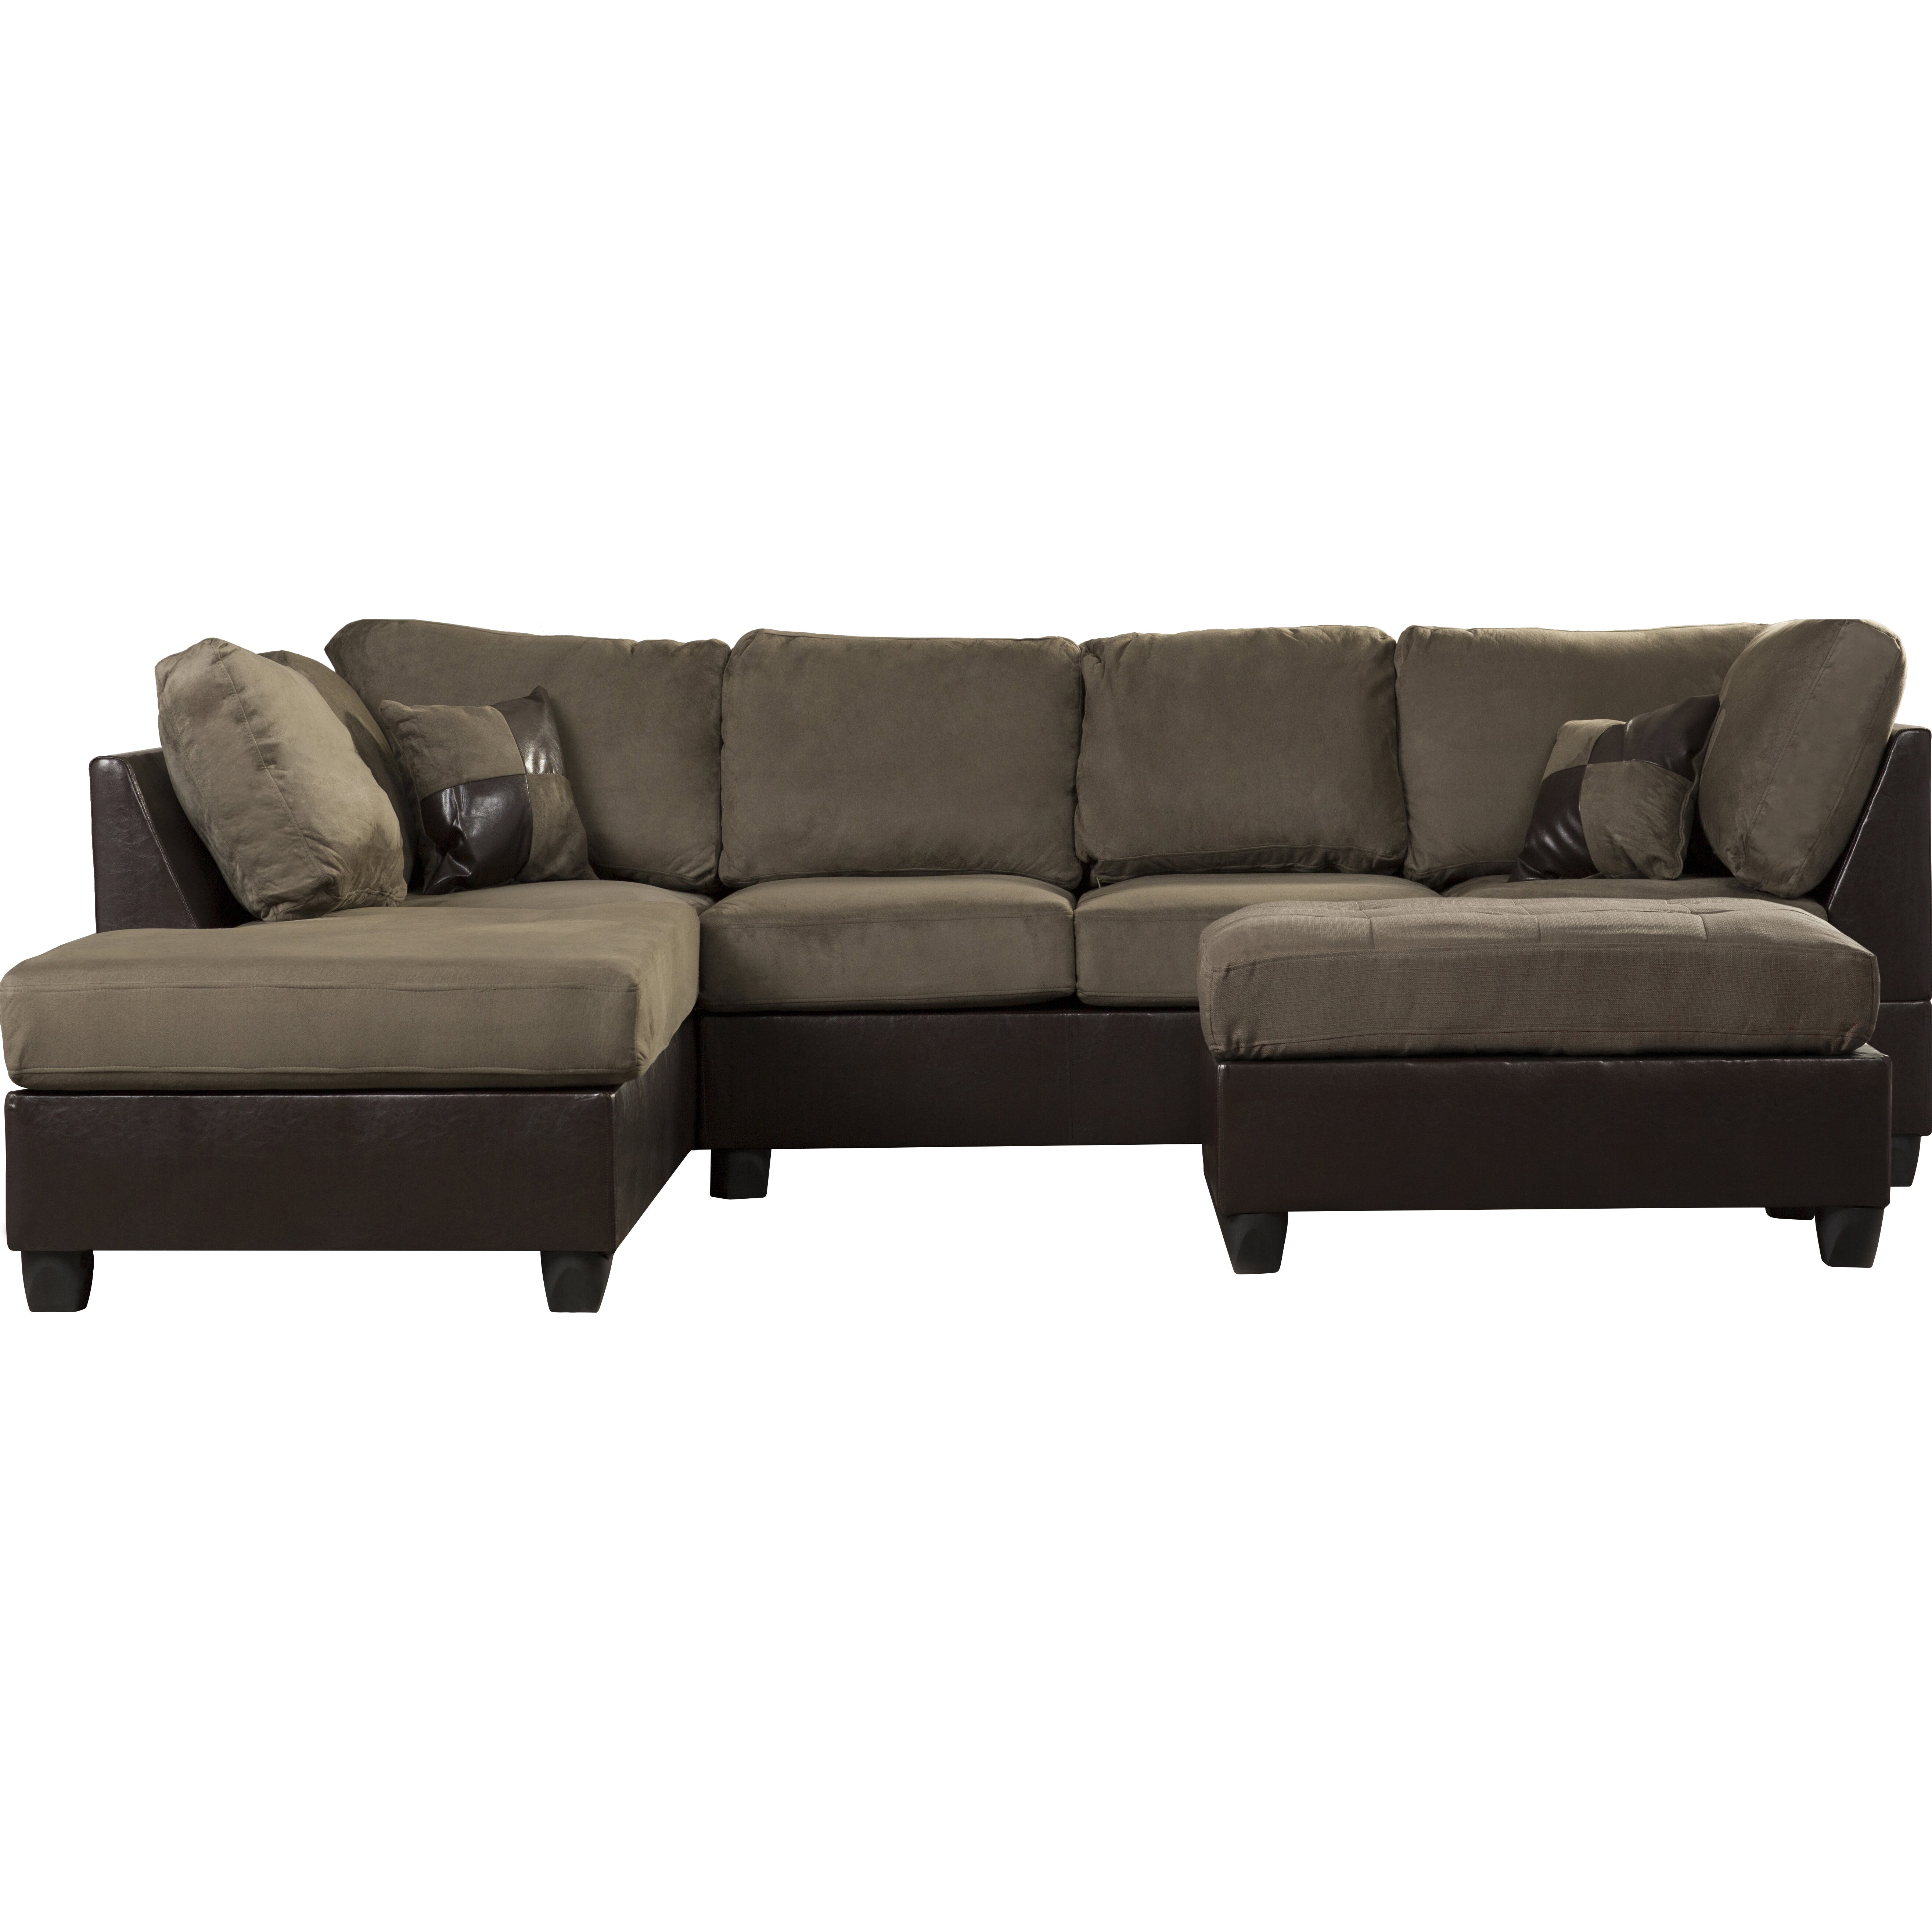 Reversible sectional sofa chaise reversible chaise for Alexander sectional sofa chaise